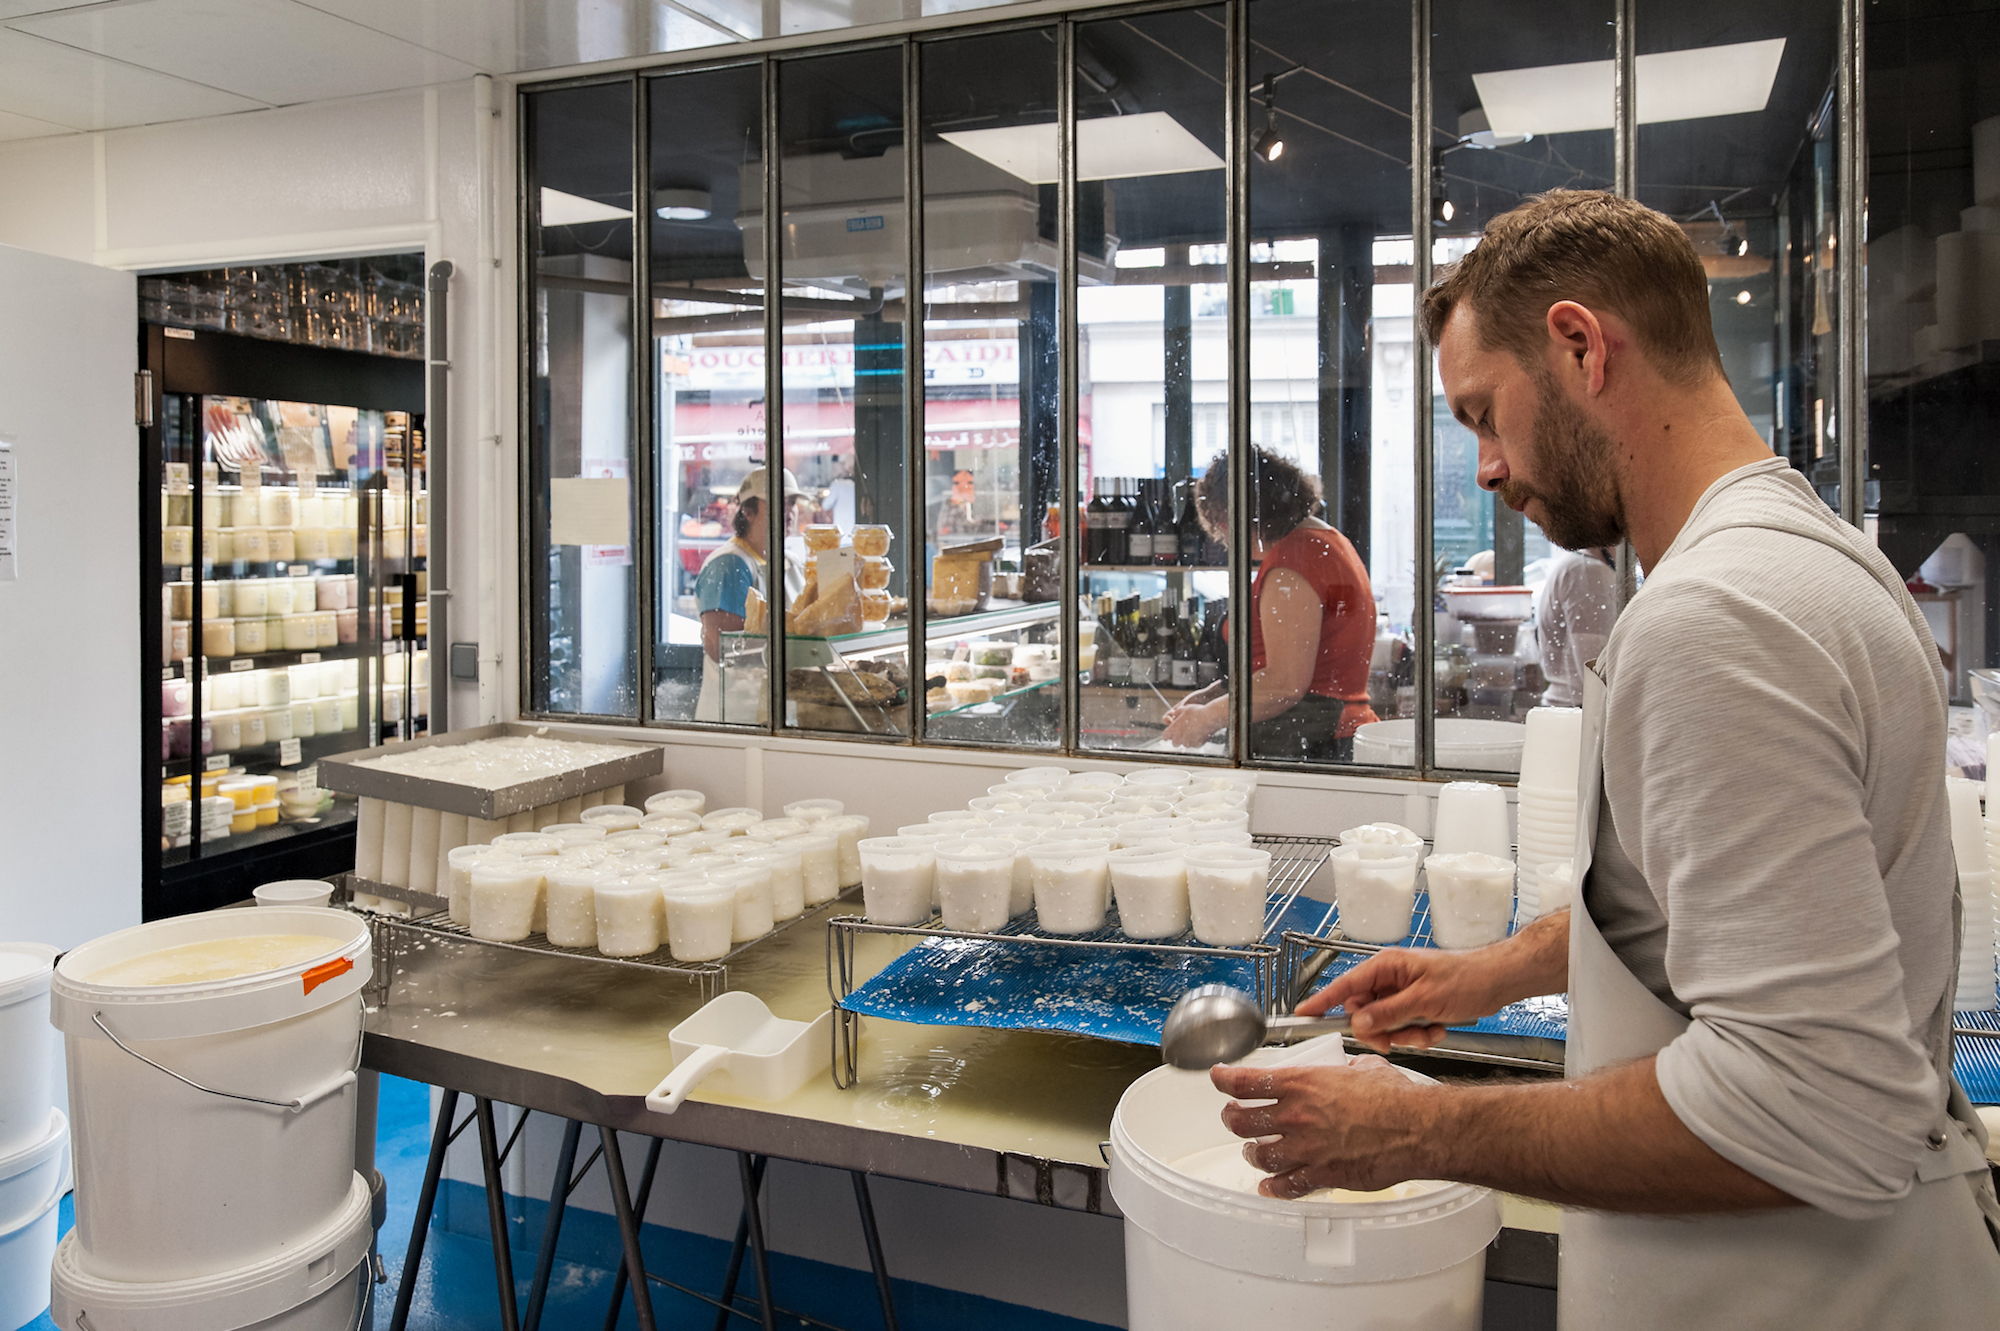 HiP Paris Blog discovers Paris' first cheese dairy La Laiterie de Paris where Pierre Coulon has his workshop and makes cheese.